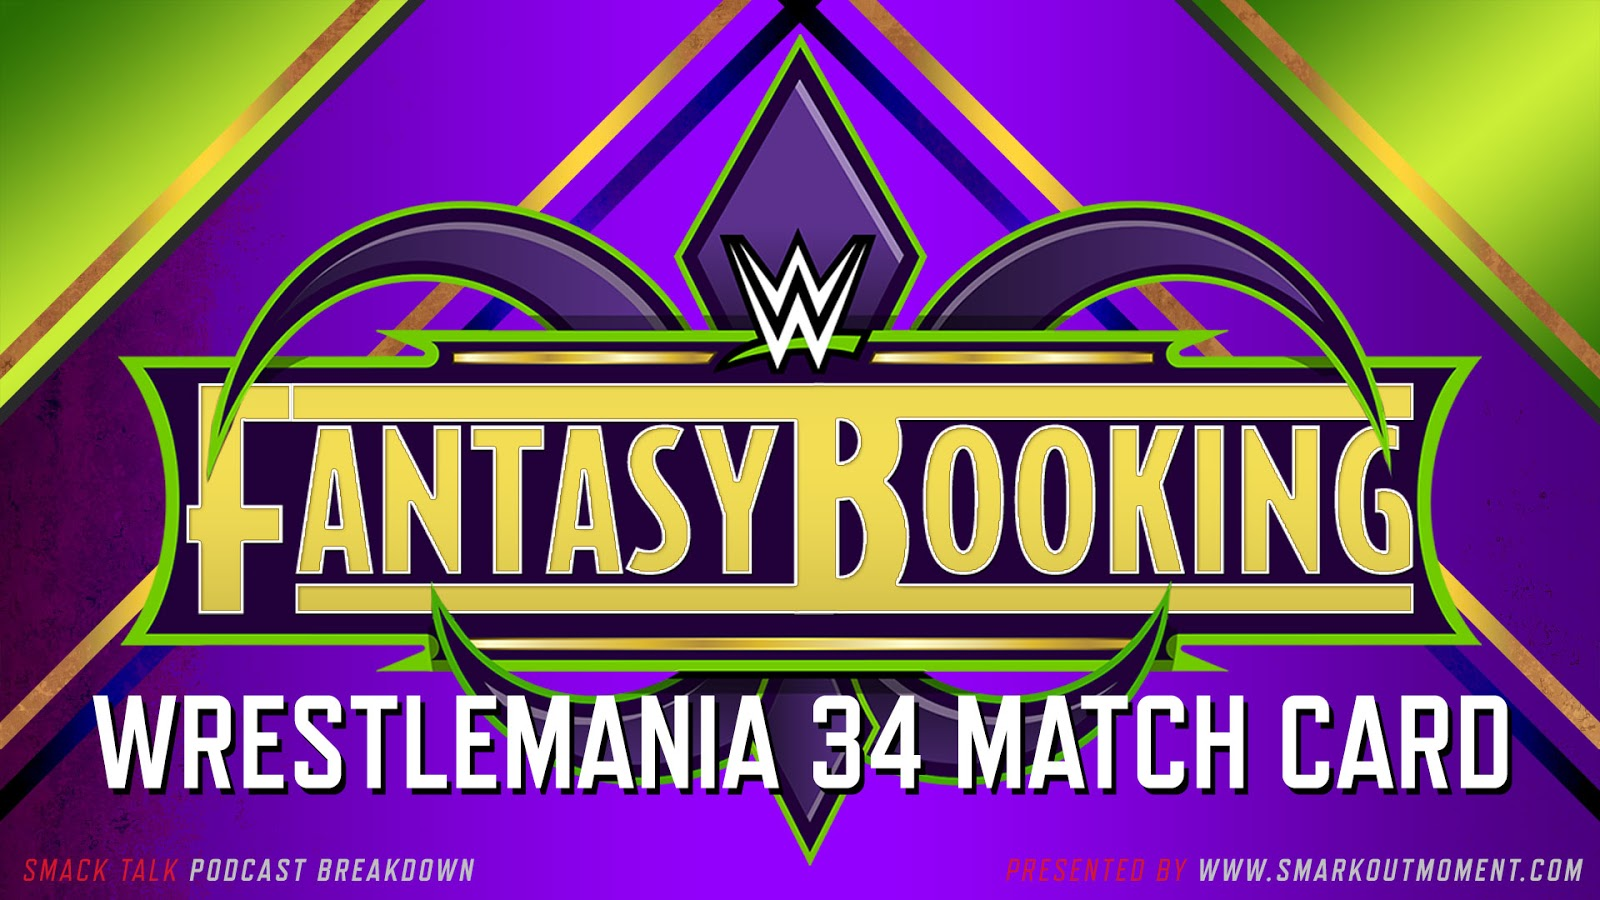 Fantasy Booking WrestleMania 34 Matches Lineup